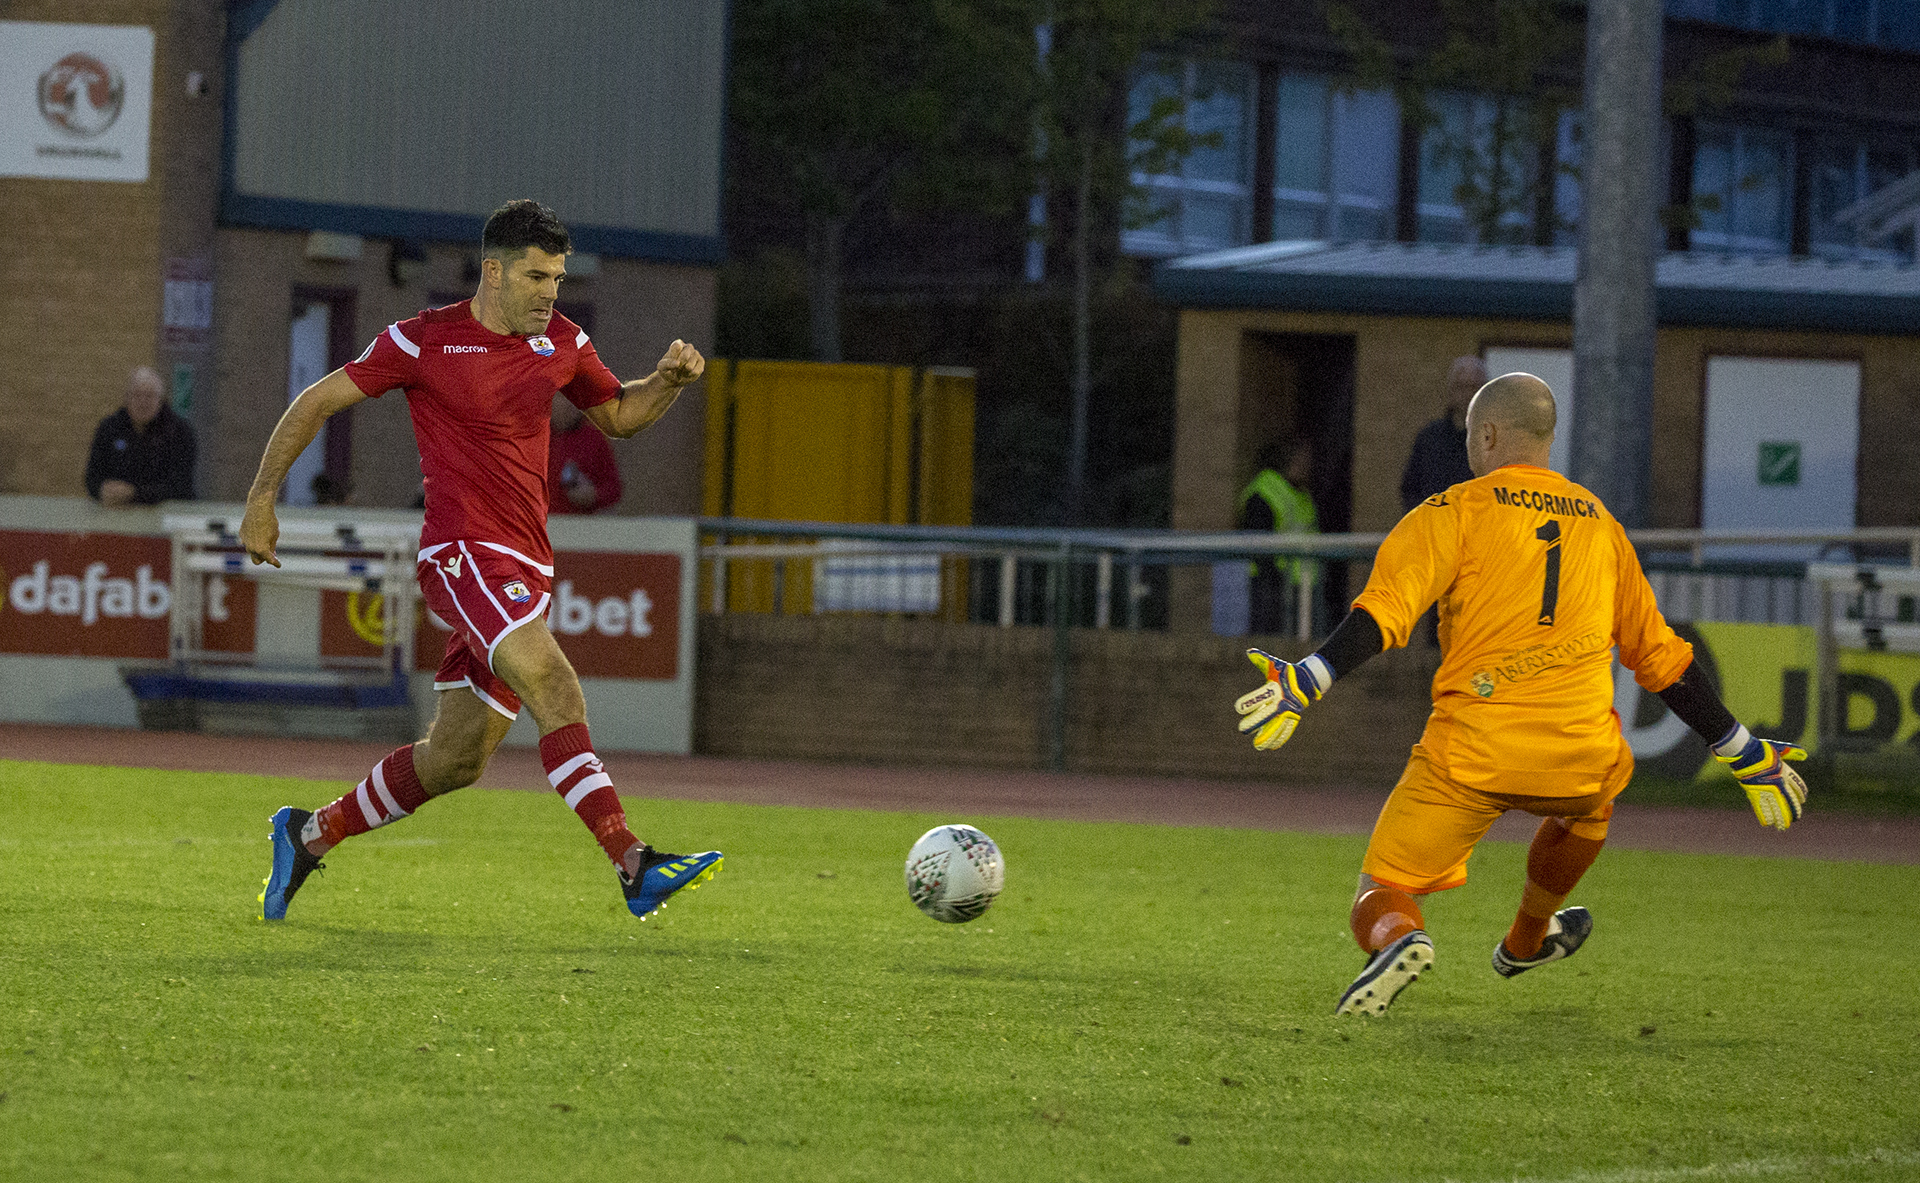 Nomads remain unbeaten with victory over Aber